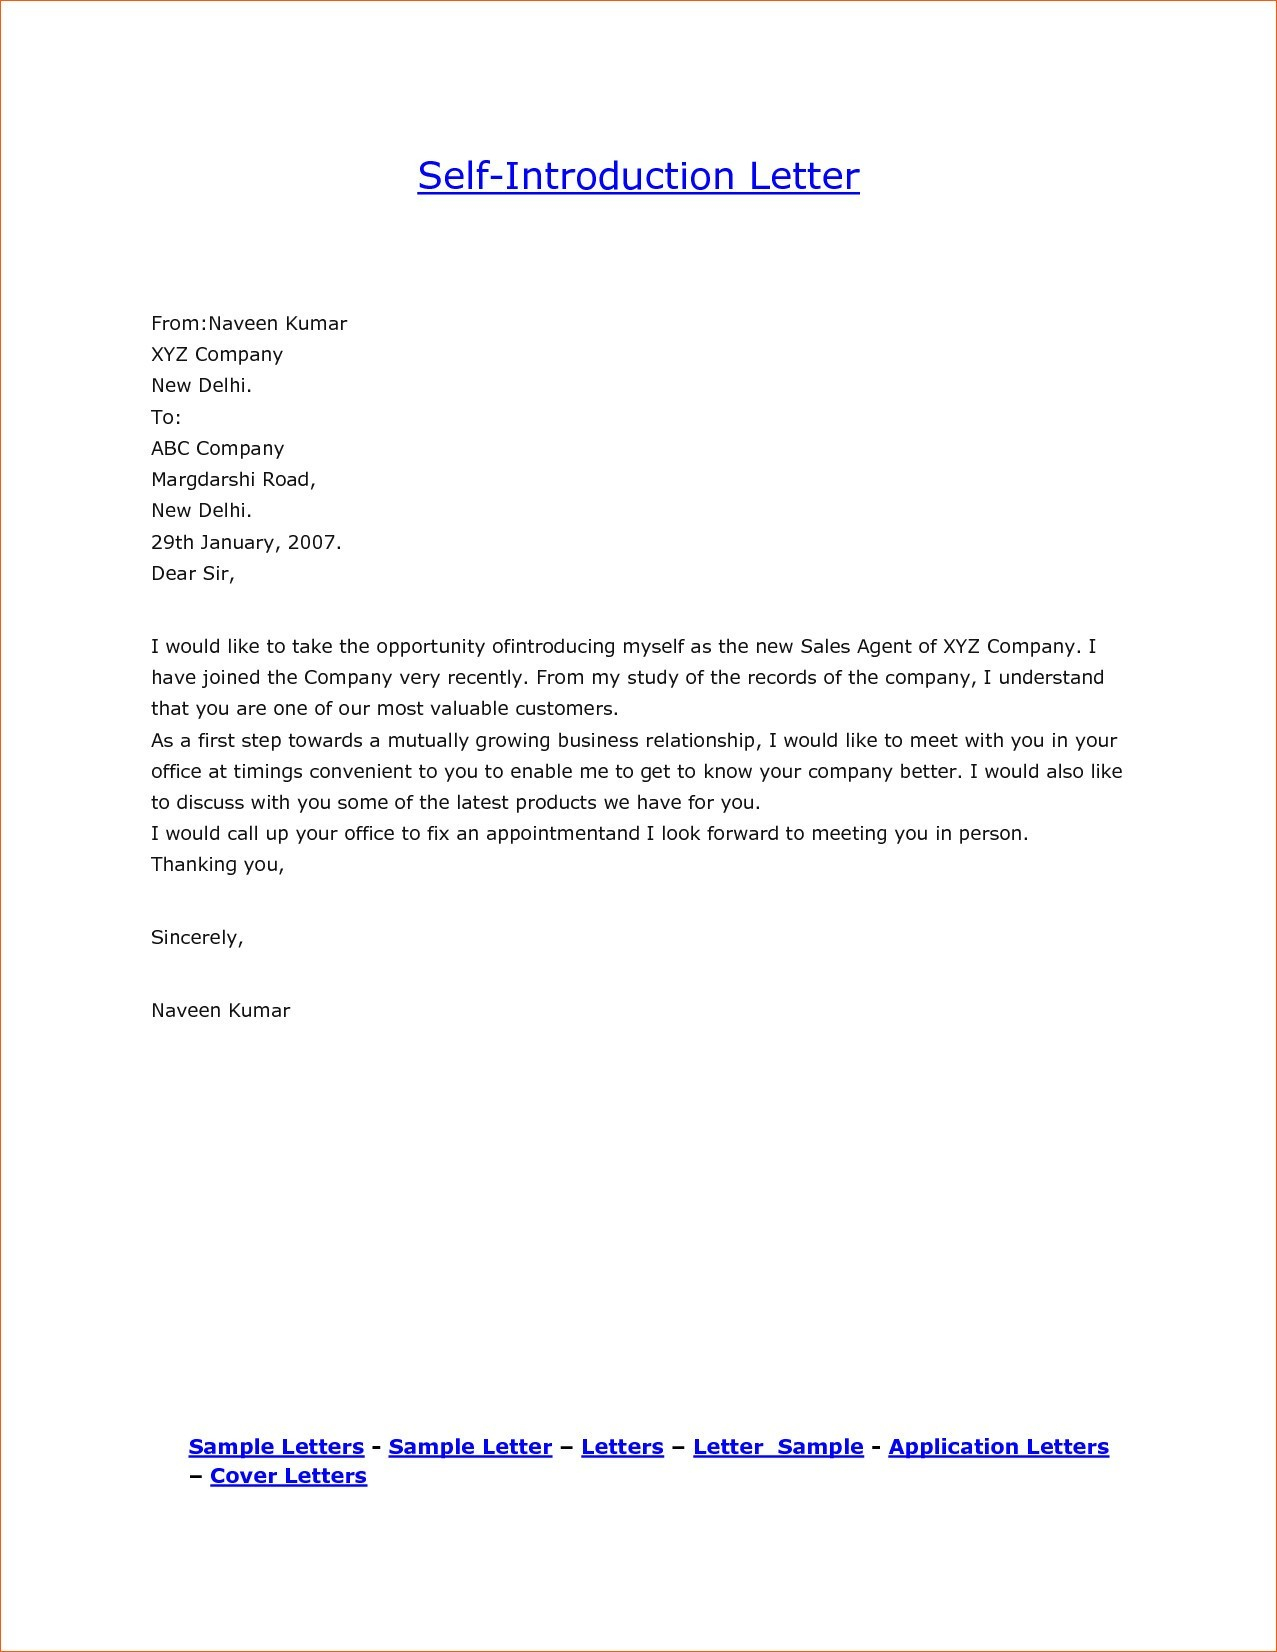 Cleaning business introduction letter template examples letter cleaning business introduction letter template introduction letter format for trading pany new samples business friedricerecipe Gallery